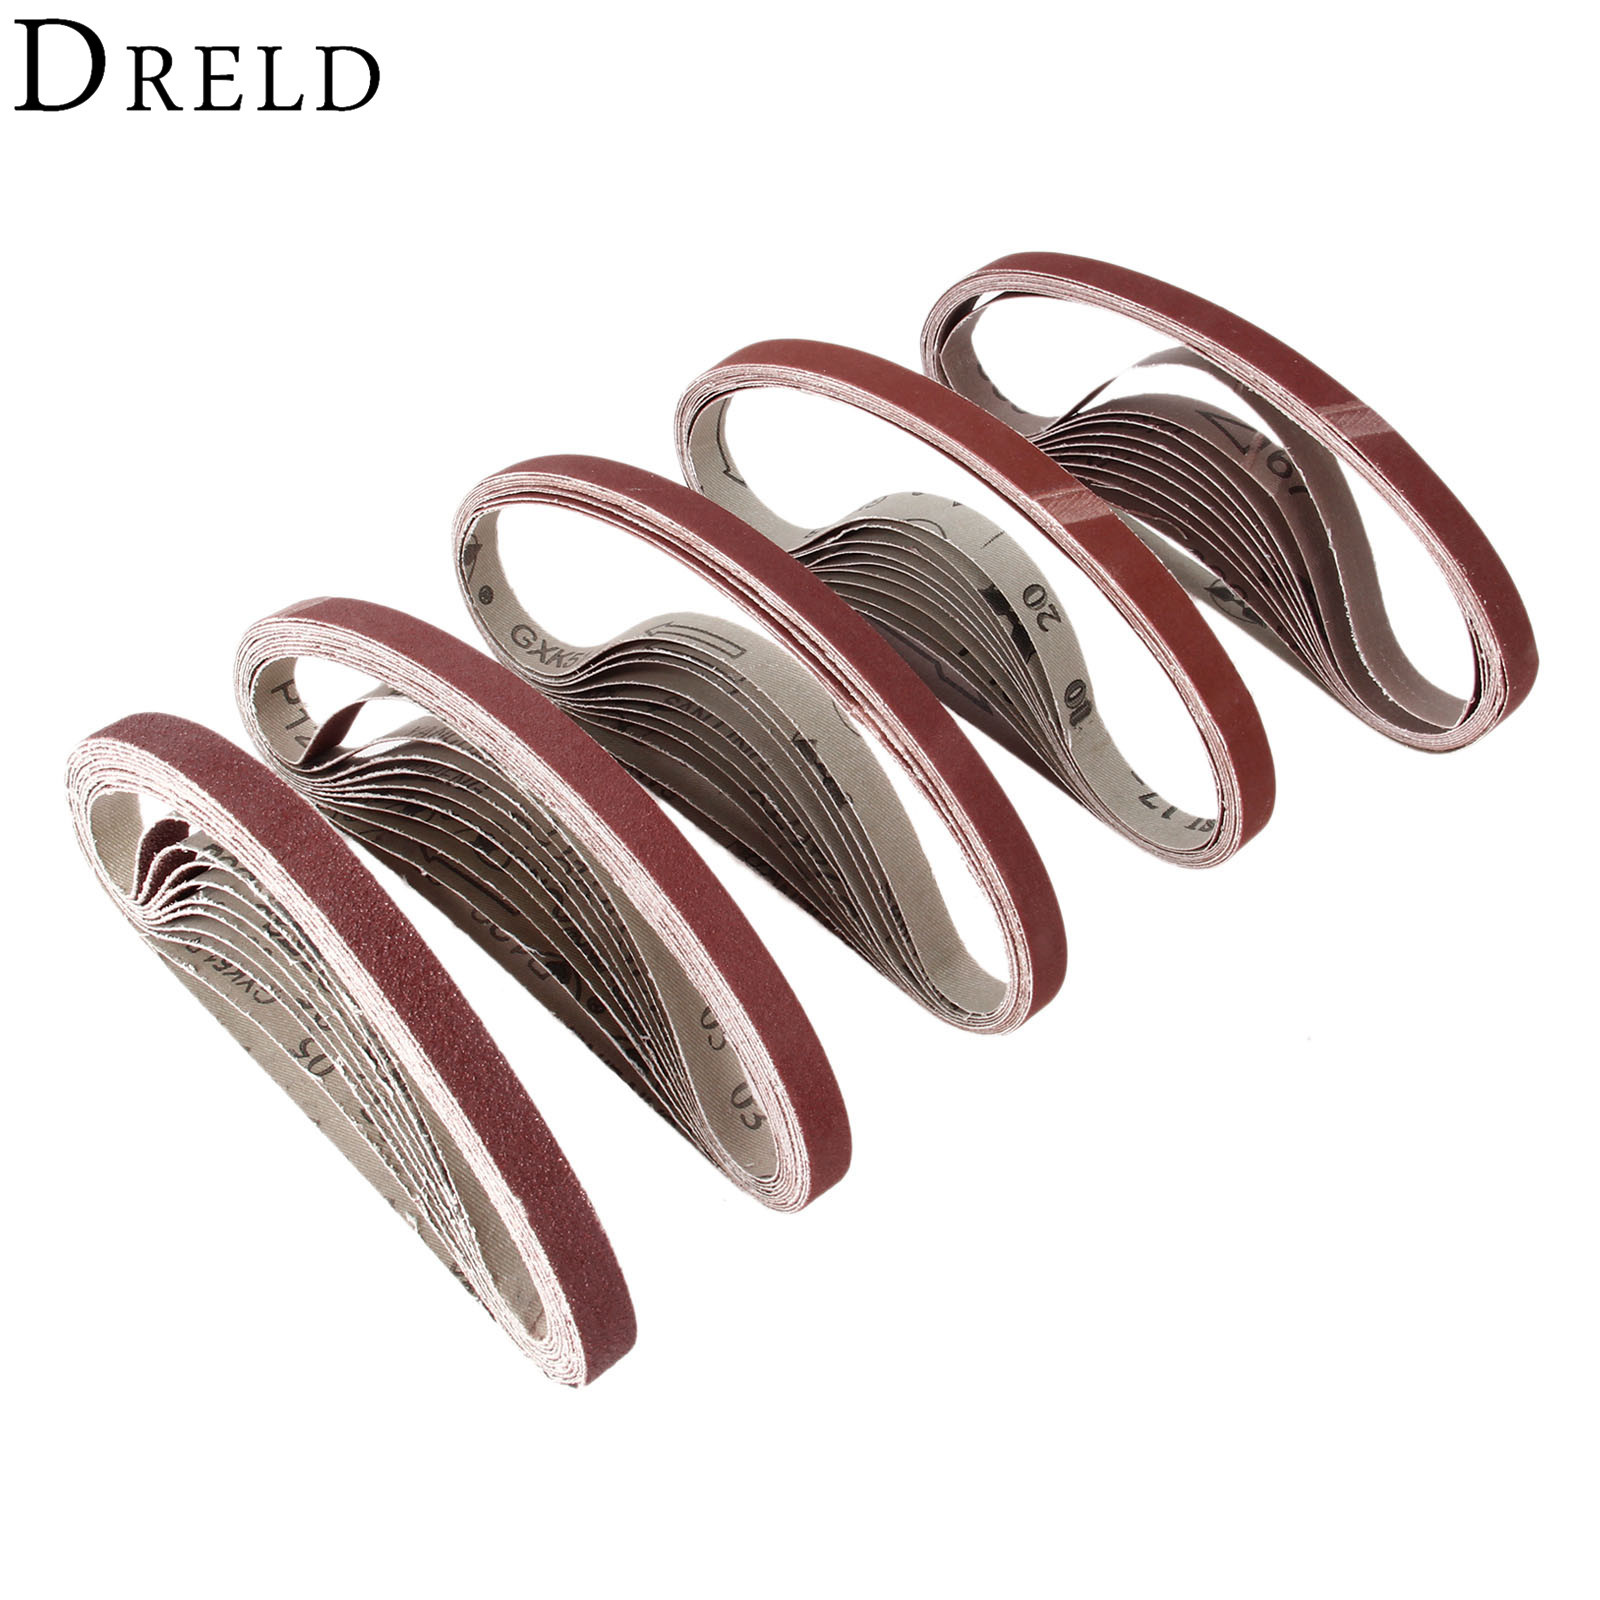 DRELD 10Pcs Dremel Accessories 15x452mm Abrasive Sanding Belt Grit 60-600 Sander Grinder Belt For Drill Grinding Polishing Tool